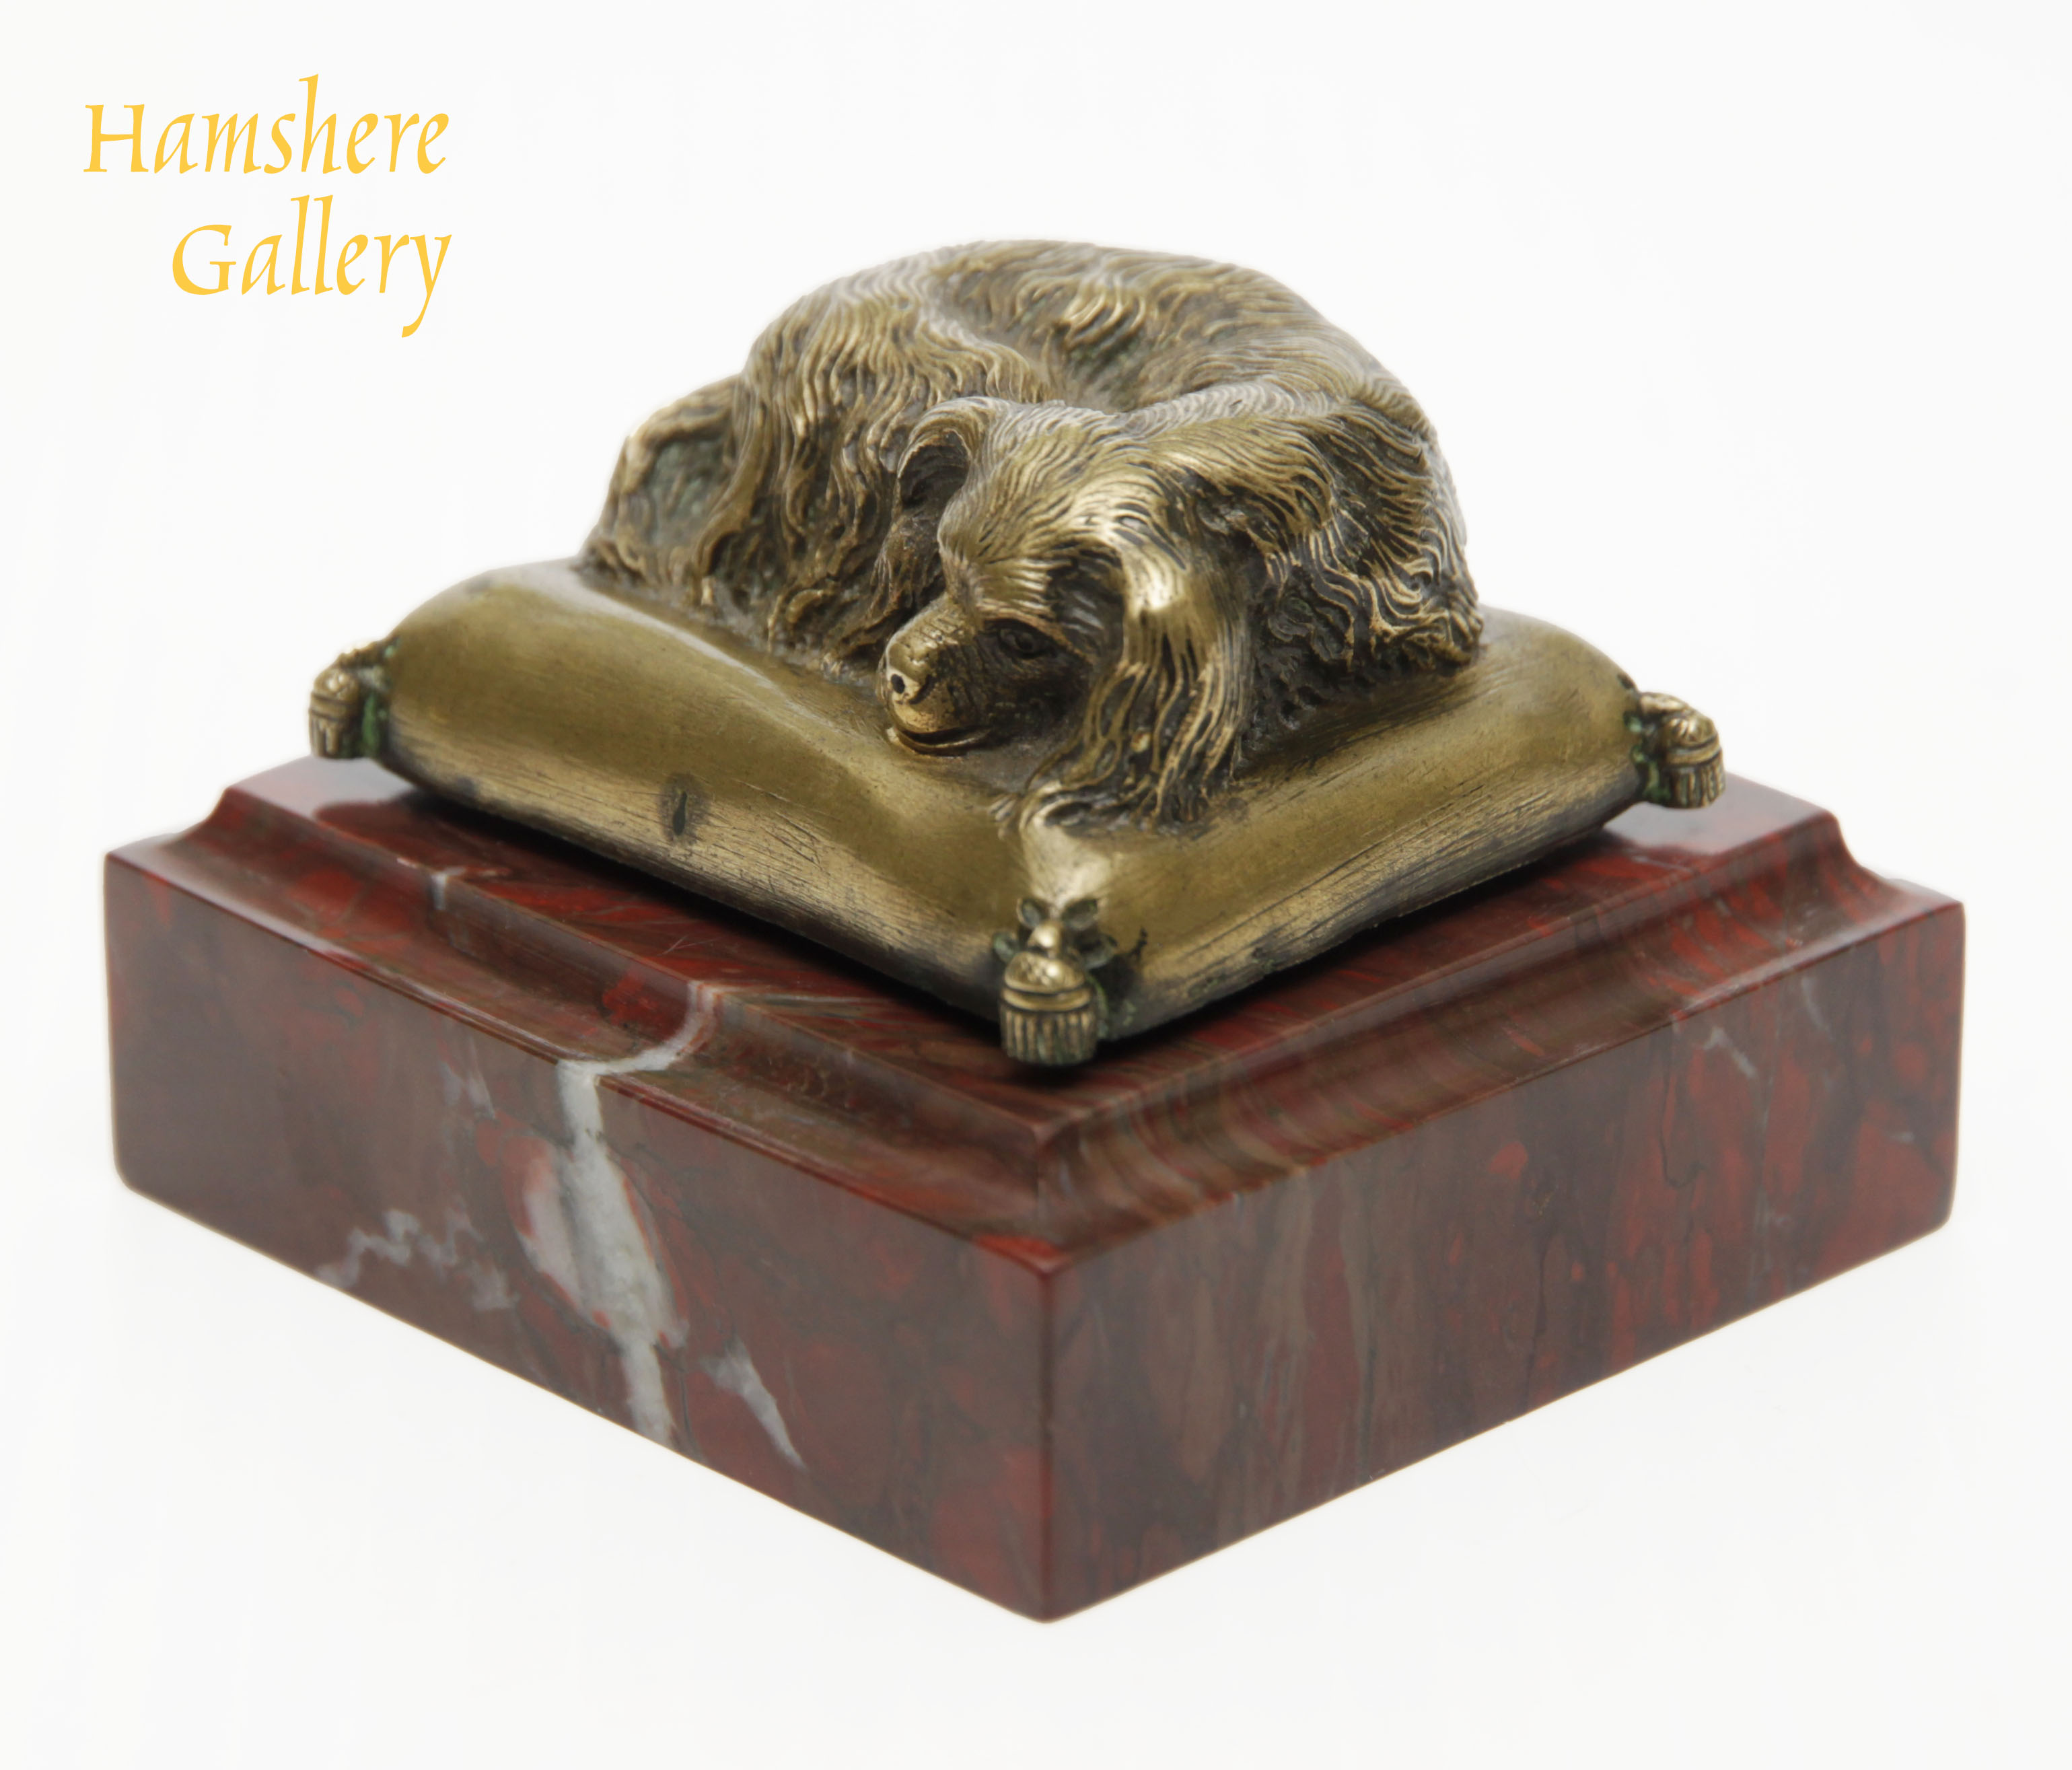 Click to see full size: A French, 19th century, Napoleon III, bronze presse-papier King Charles Cavalier Spaniel on a marble base- A French, 19th century, Napoleon III, bronze presse-papier King Charles Cavalier Spaniel on a marble base